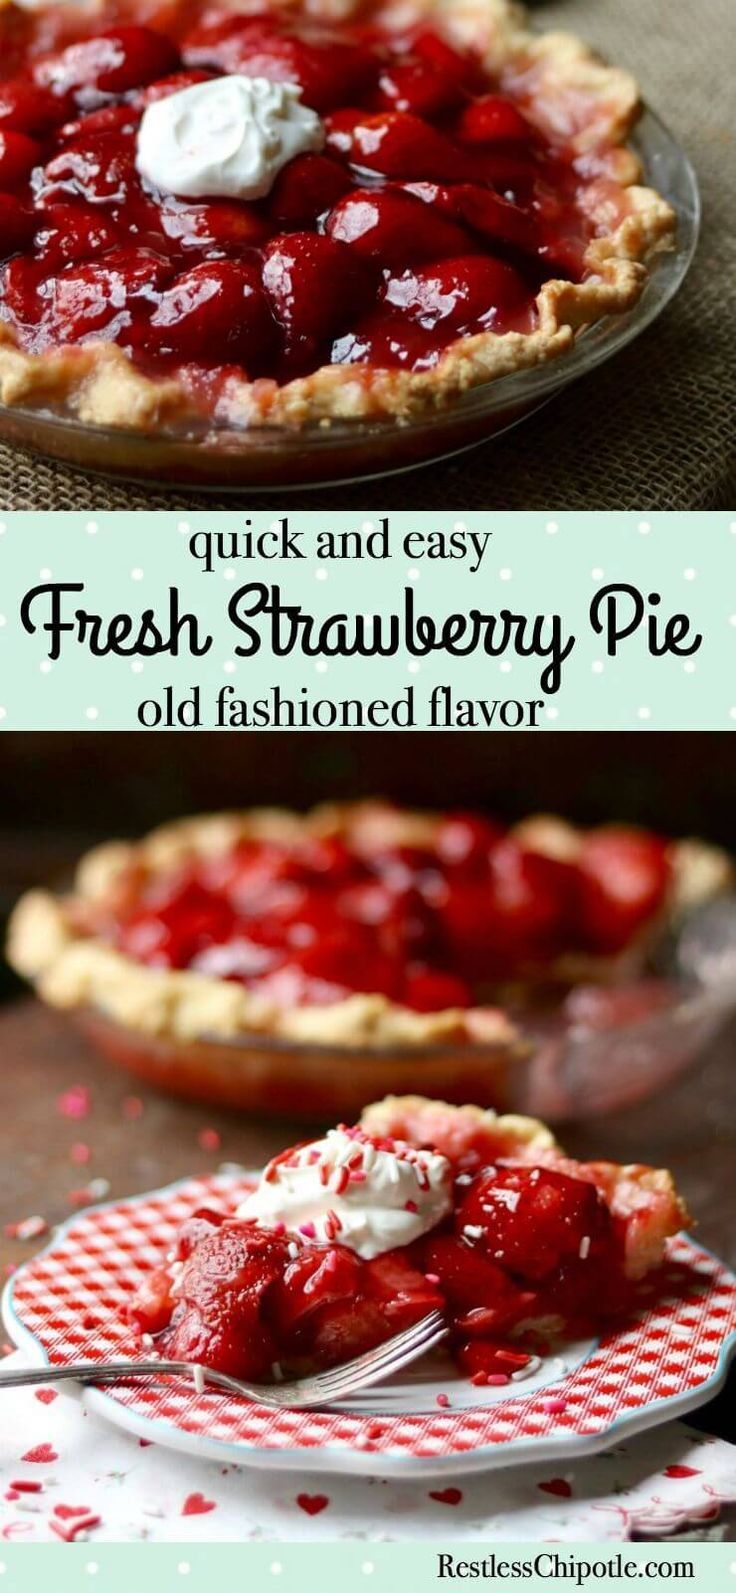 This easy, fresh strawberry pie has a homemade glaze - no jello. No baking required! From RestlessChipotle.com via @Marye at Restless Chipotle